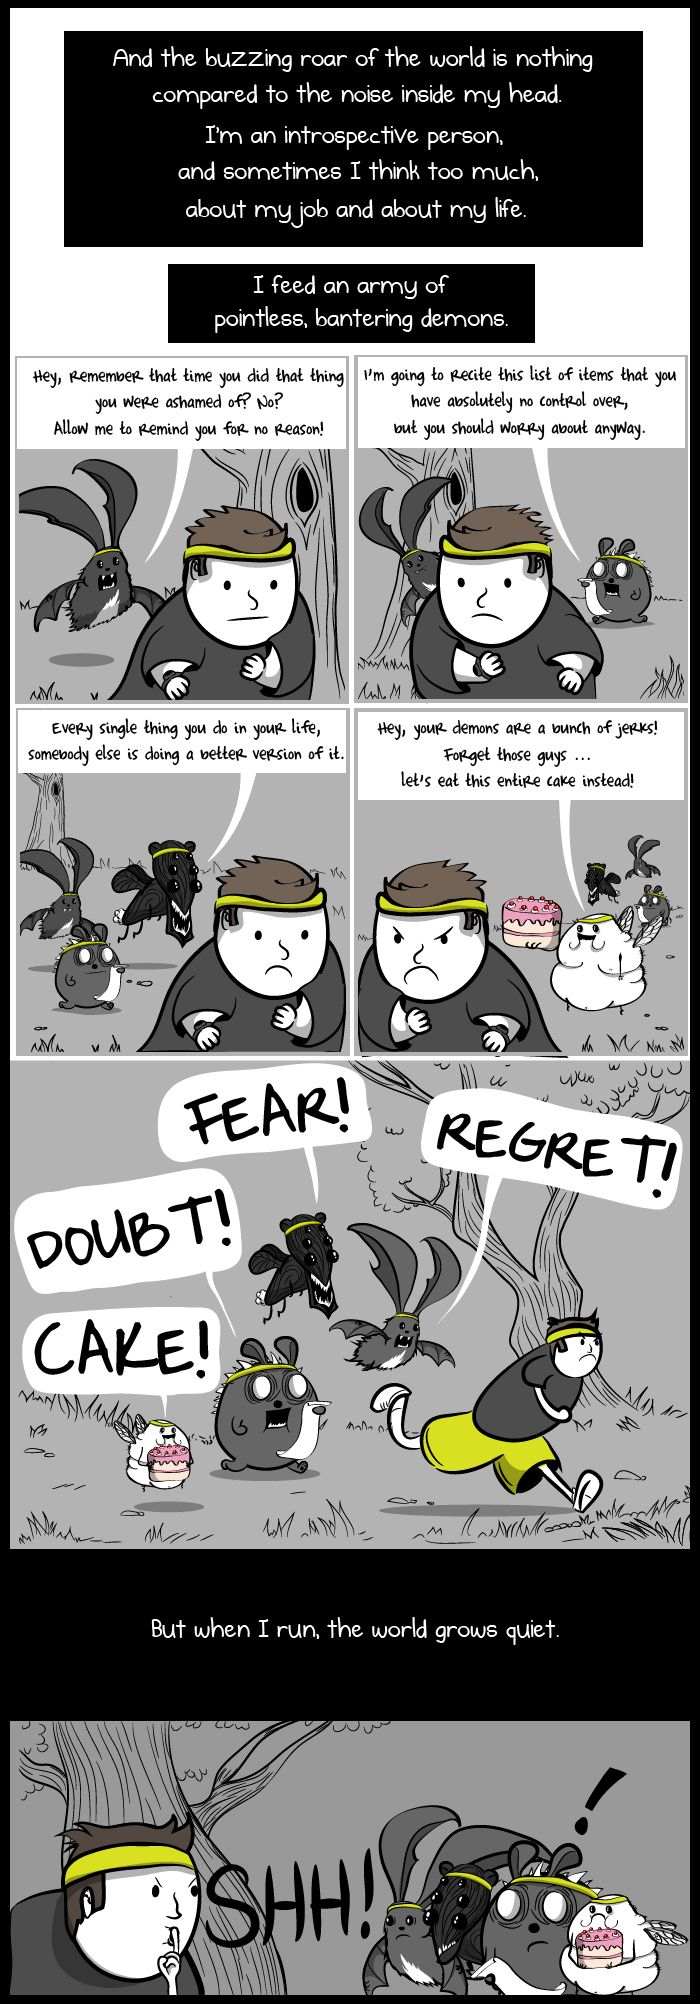 """""""The terrible and wonderful reasons why I run long distances - Part 6 - The Oatmeal"""" Hey, I have those same demons! Cake is a bastard..."""